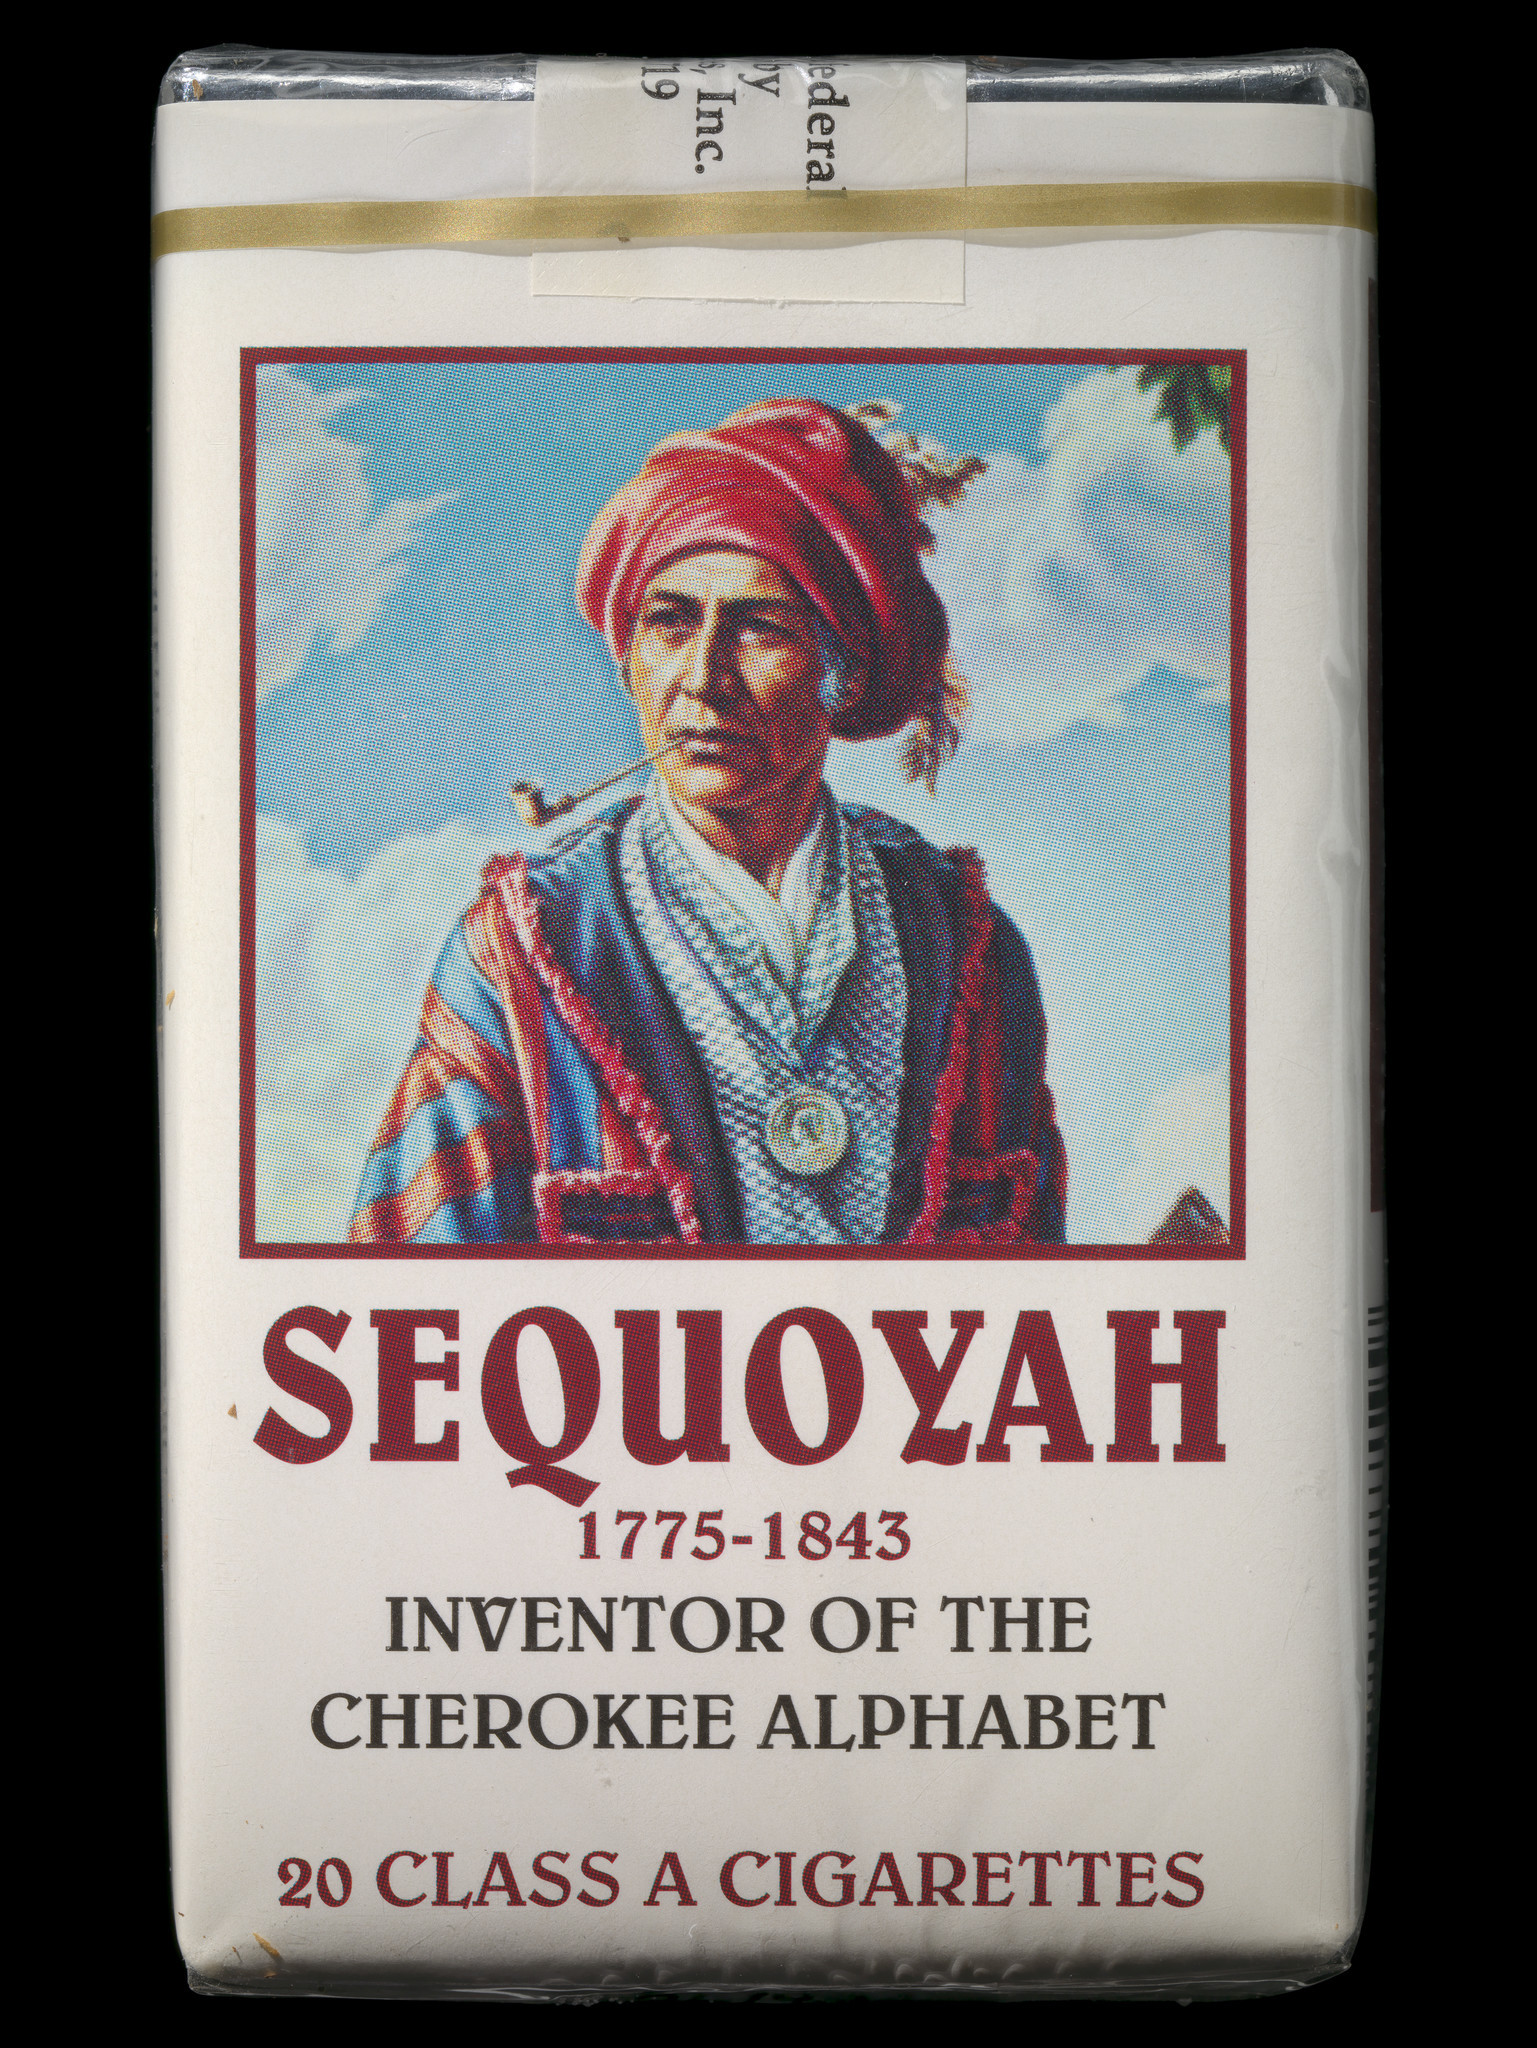 Sequoyah Cigarettes